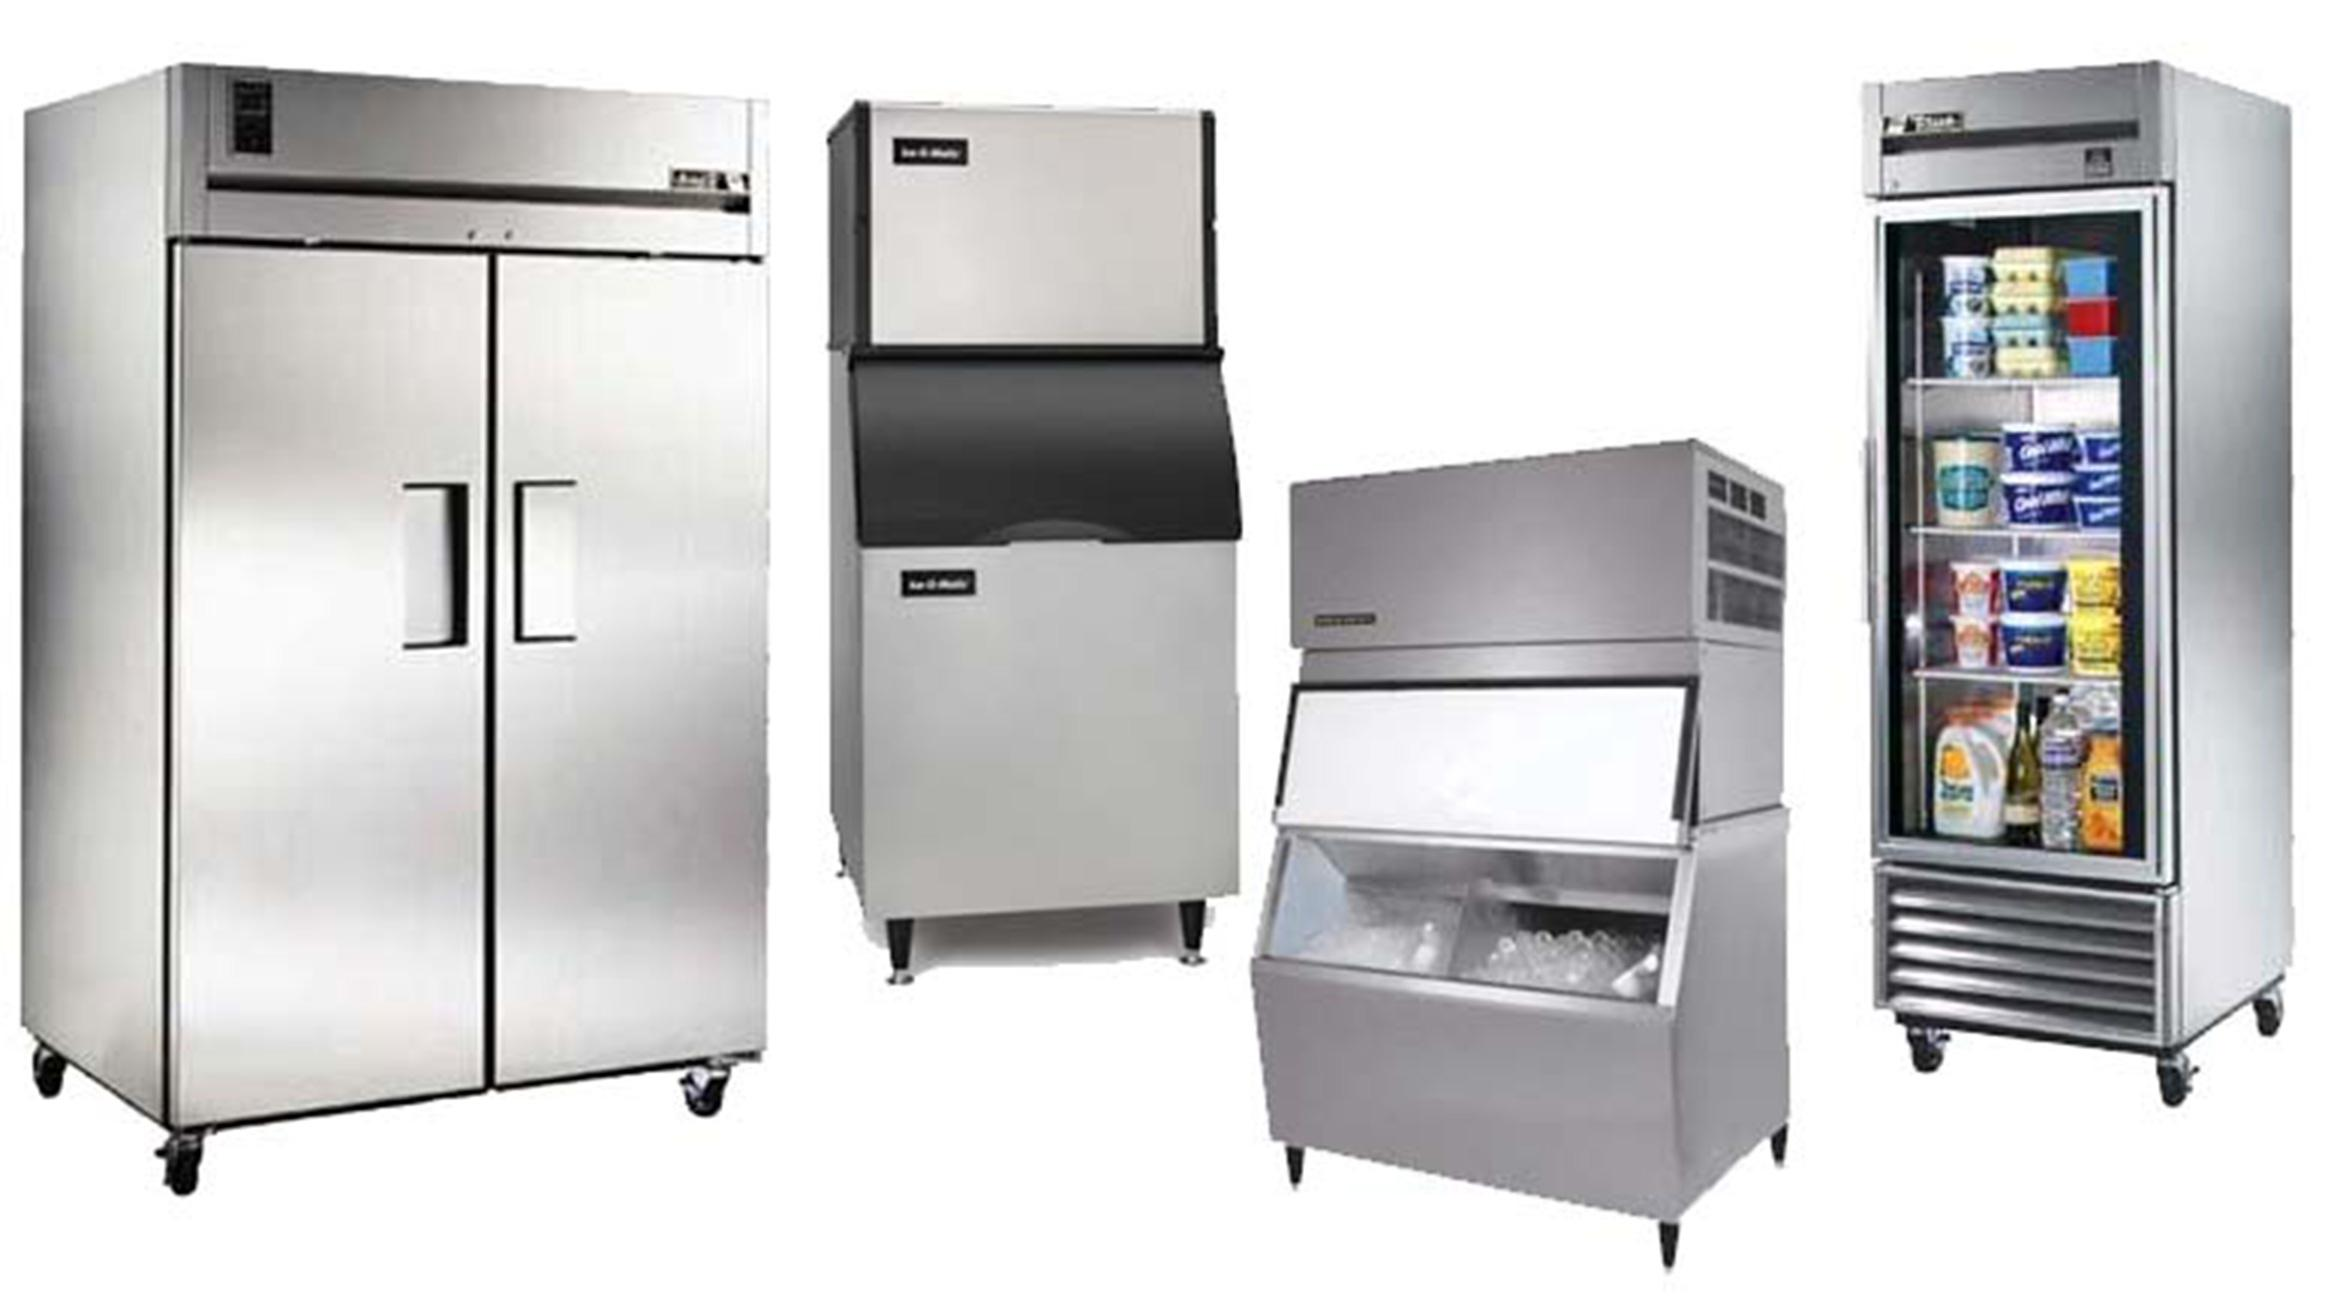 5 Tips for Maintaining Commercial Kitchen Refrigerator